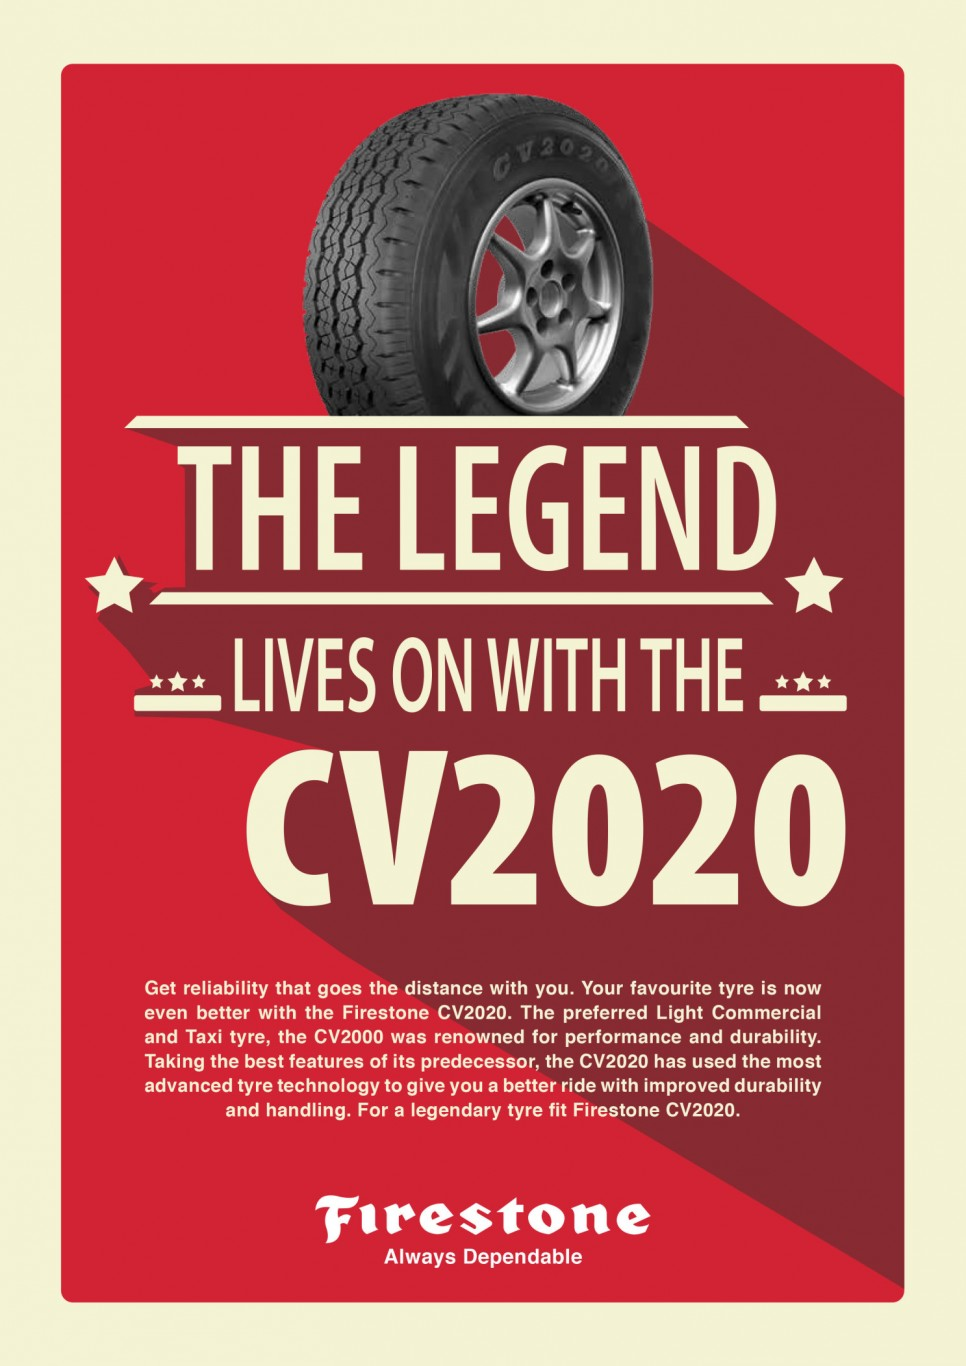 Bridgestone unveils successor to widely-used CV2000 light commercial tyre